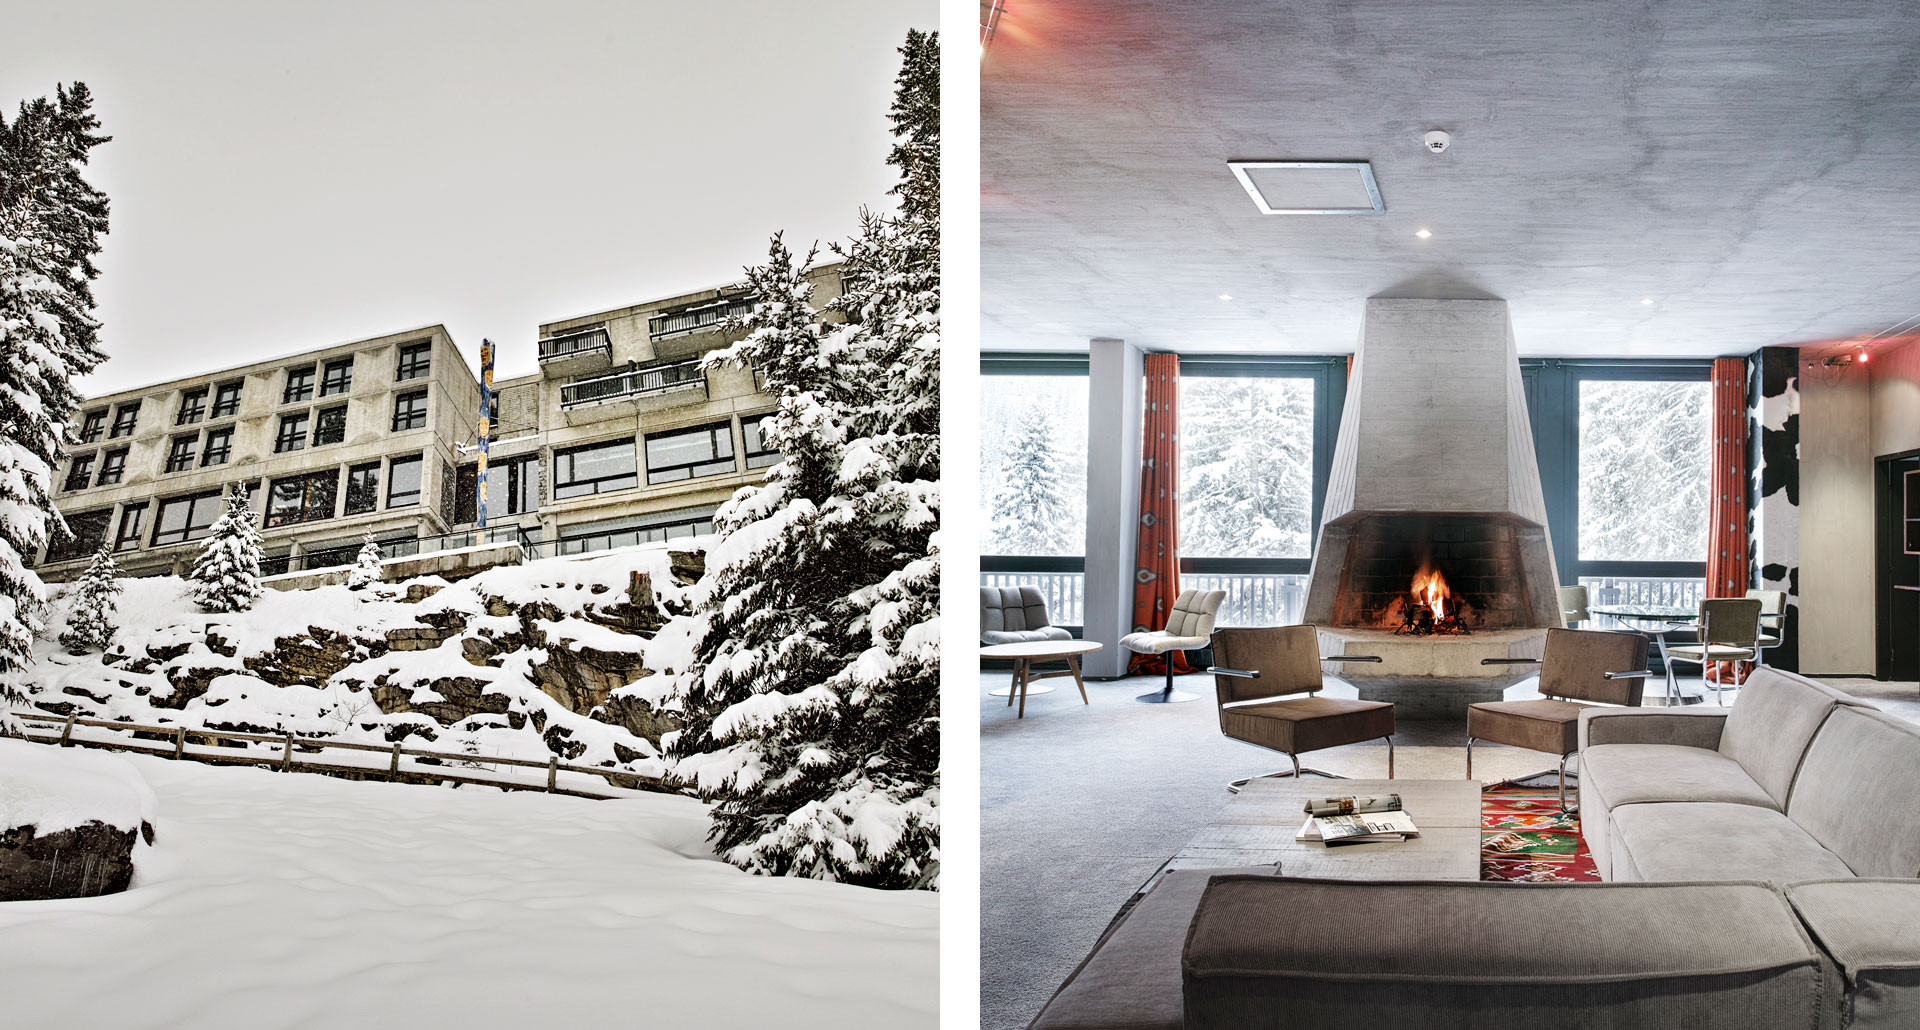 Terminal Neige Totem - boutique hotel in Flaine